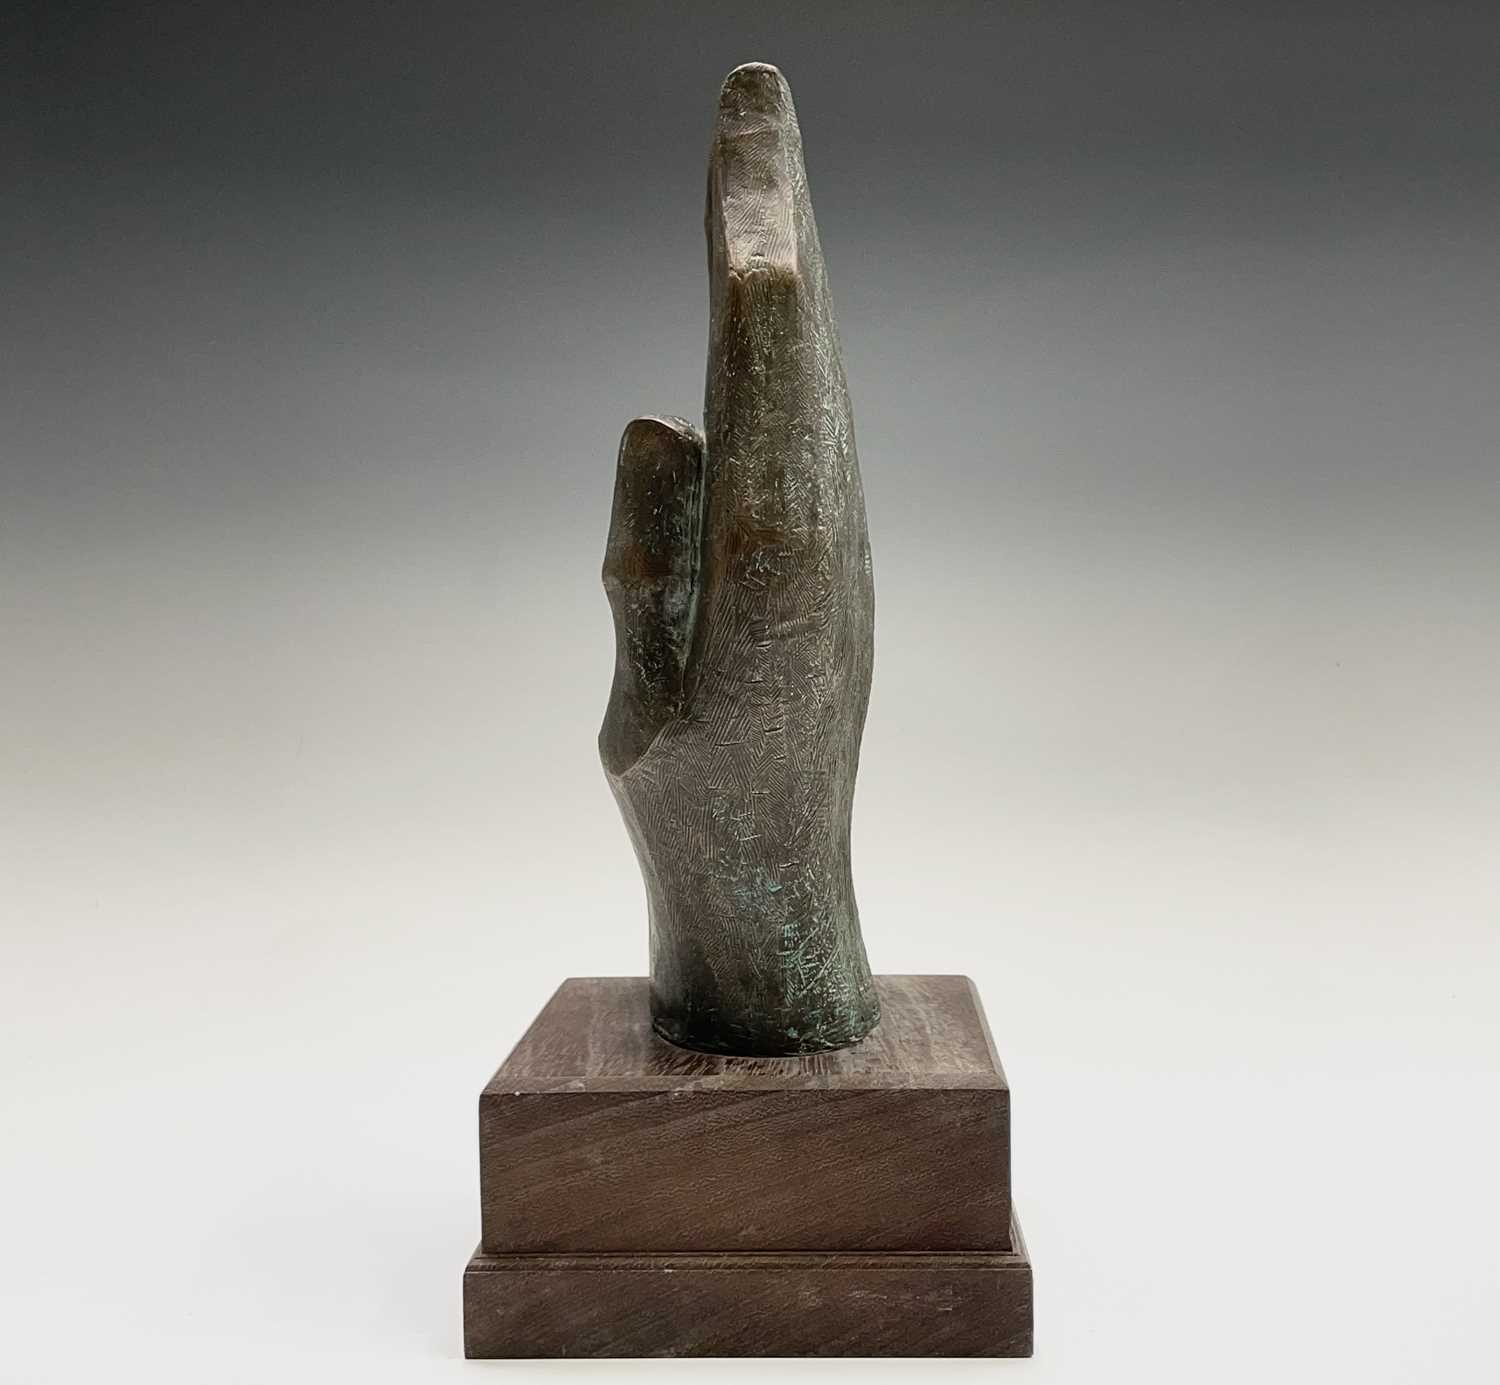 Alec WILES (1924)Hands Cold cast bronze sculpture Signed Height 34cm including wooden base - Image 6 of 9